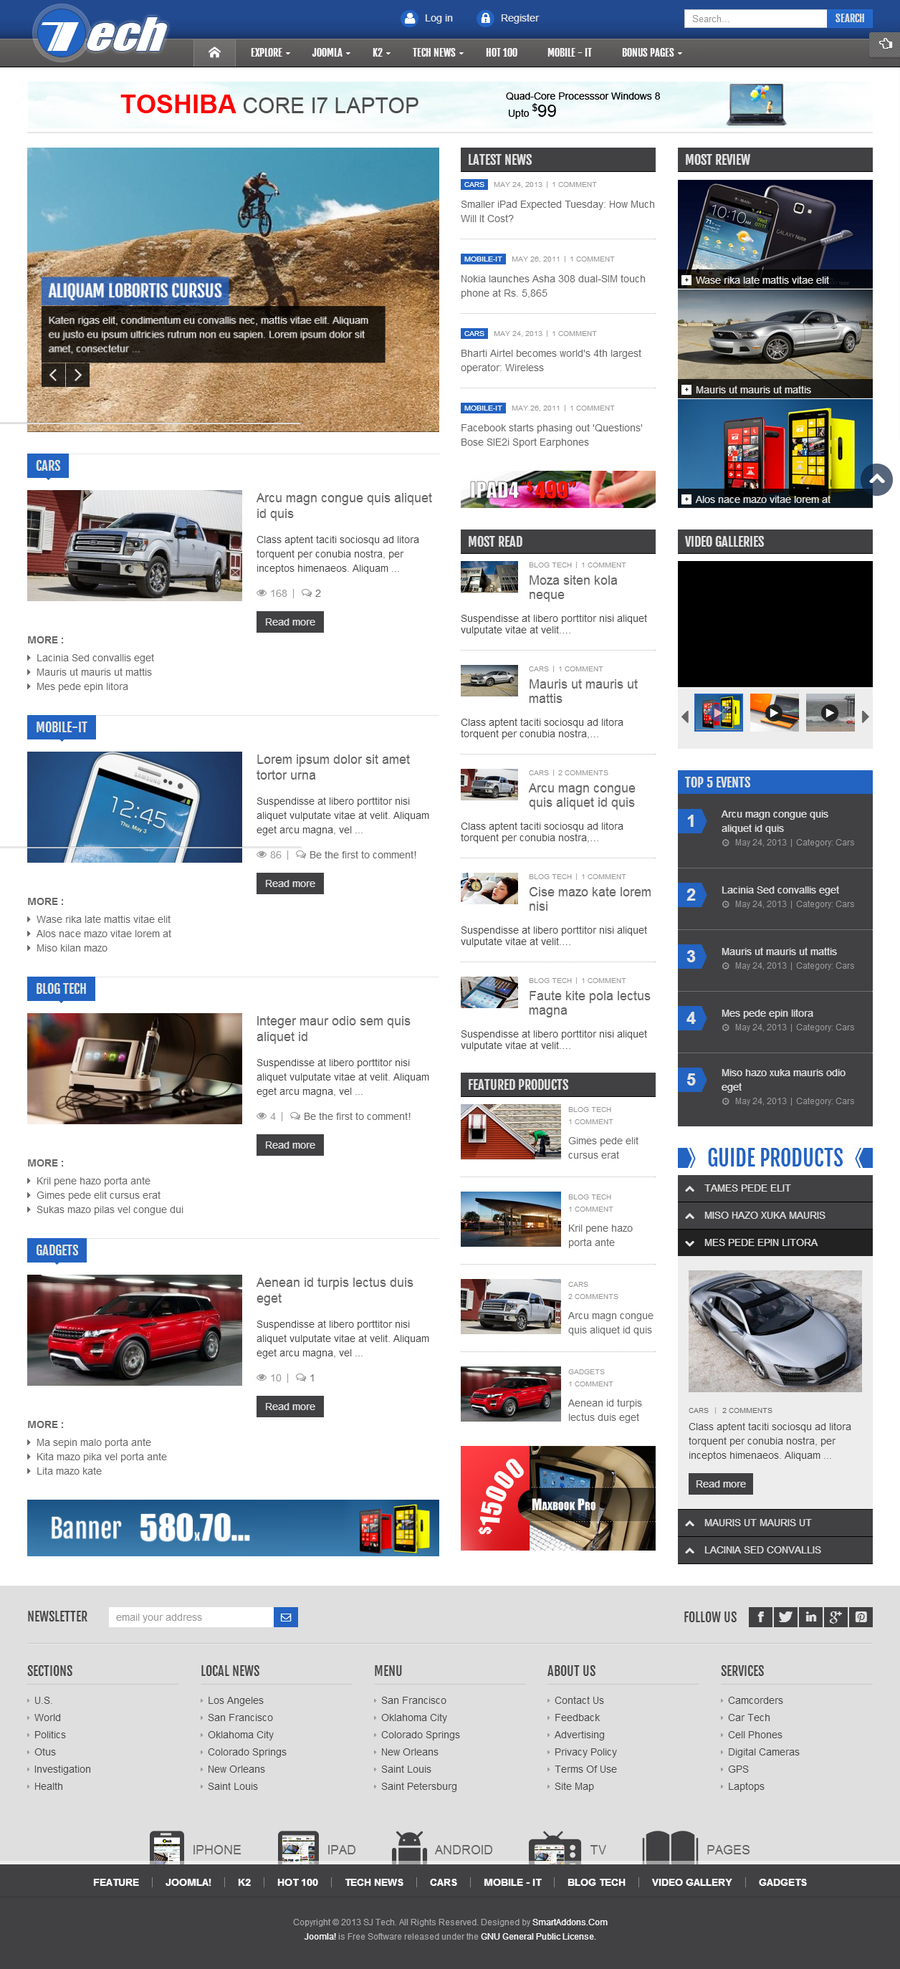 SJ Tech - Responsive Joomla news magazine Template for Tech - 07blue.jpg